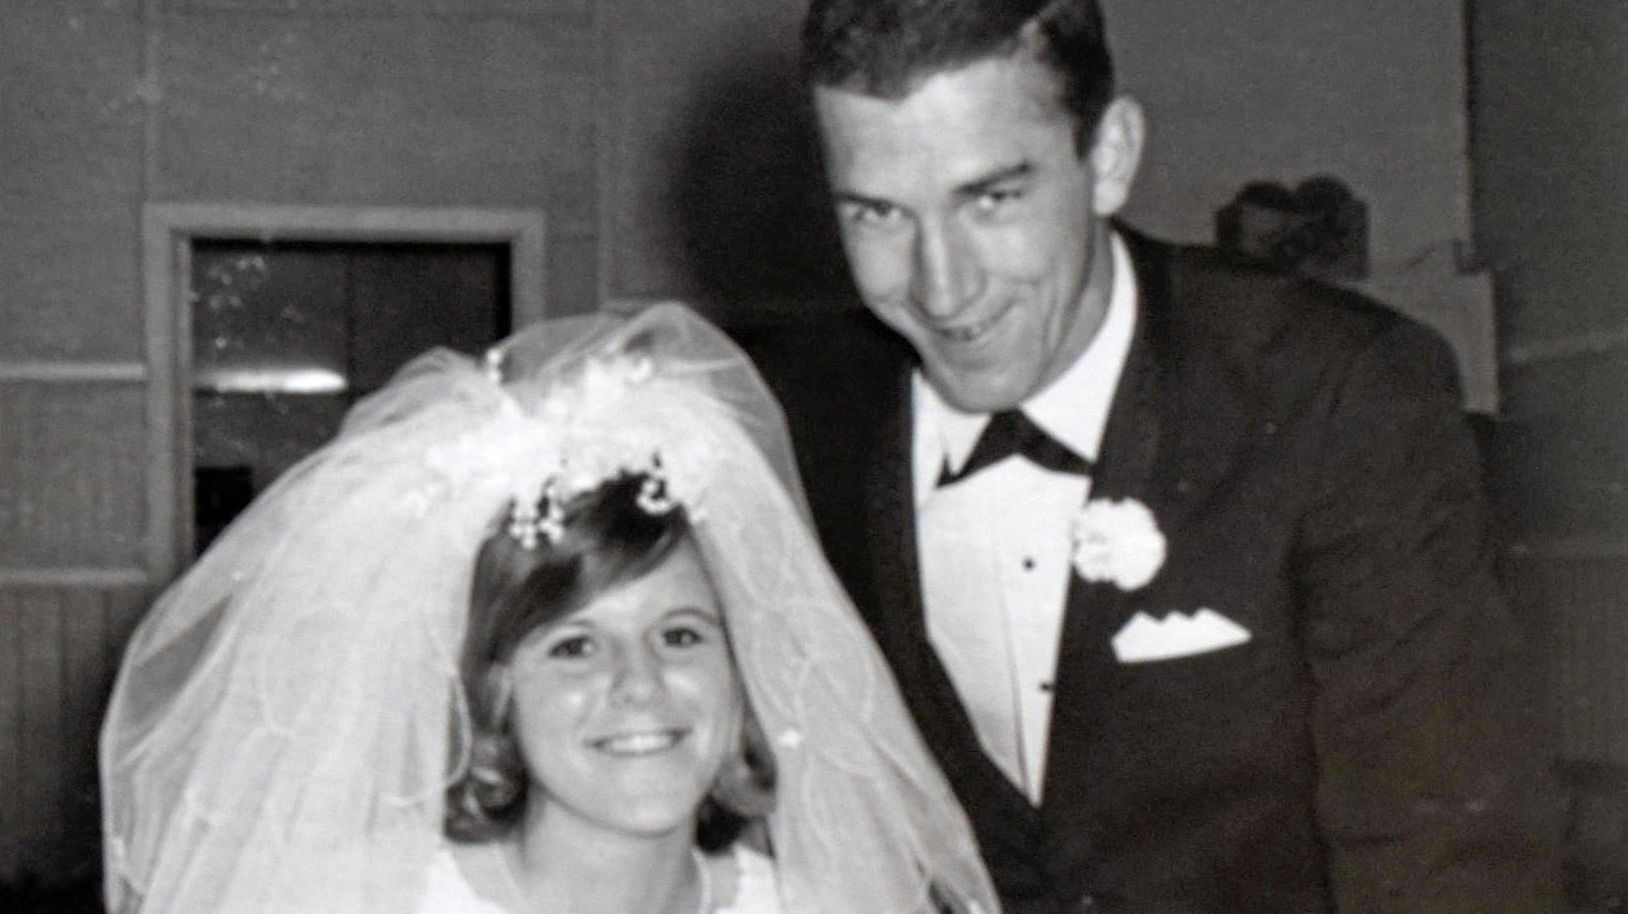 GOLDEN: Jean and Robert Ekert on their wedding day, May 17, 1969 in Newcastle.